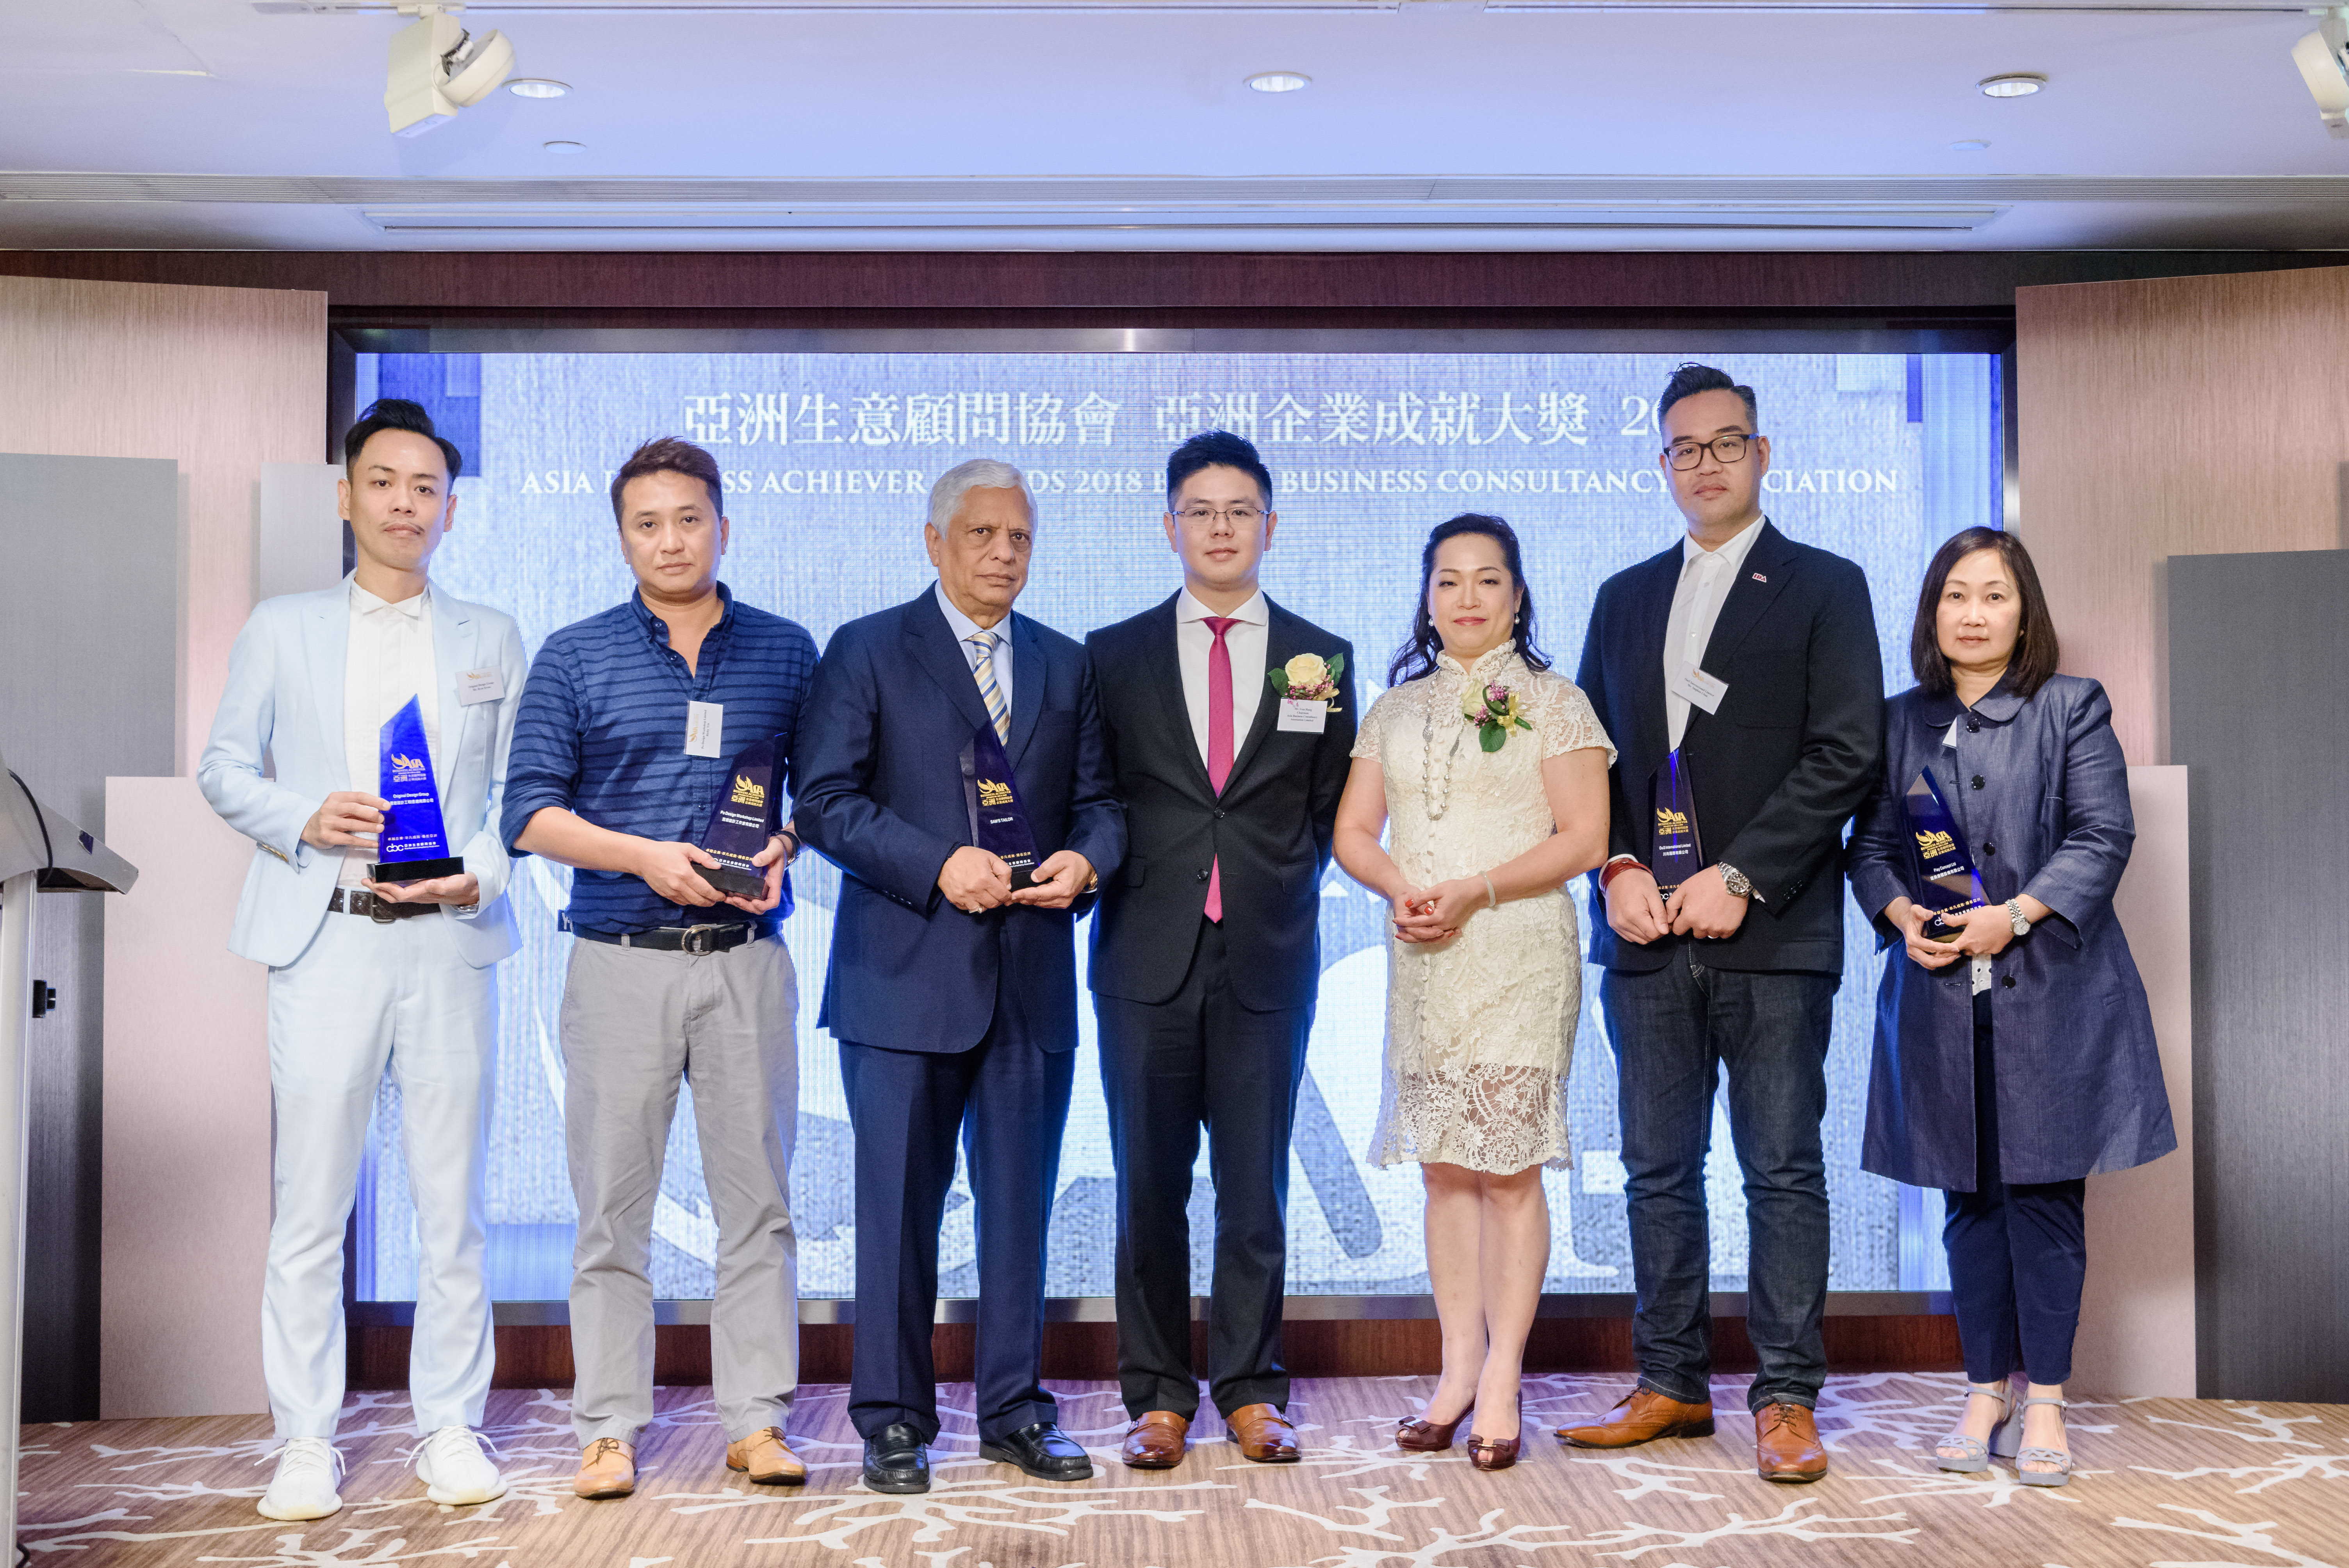 Play Concept - Play Concept won the Asia Business Achiever Awards 2018 - 1